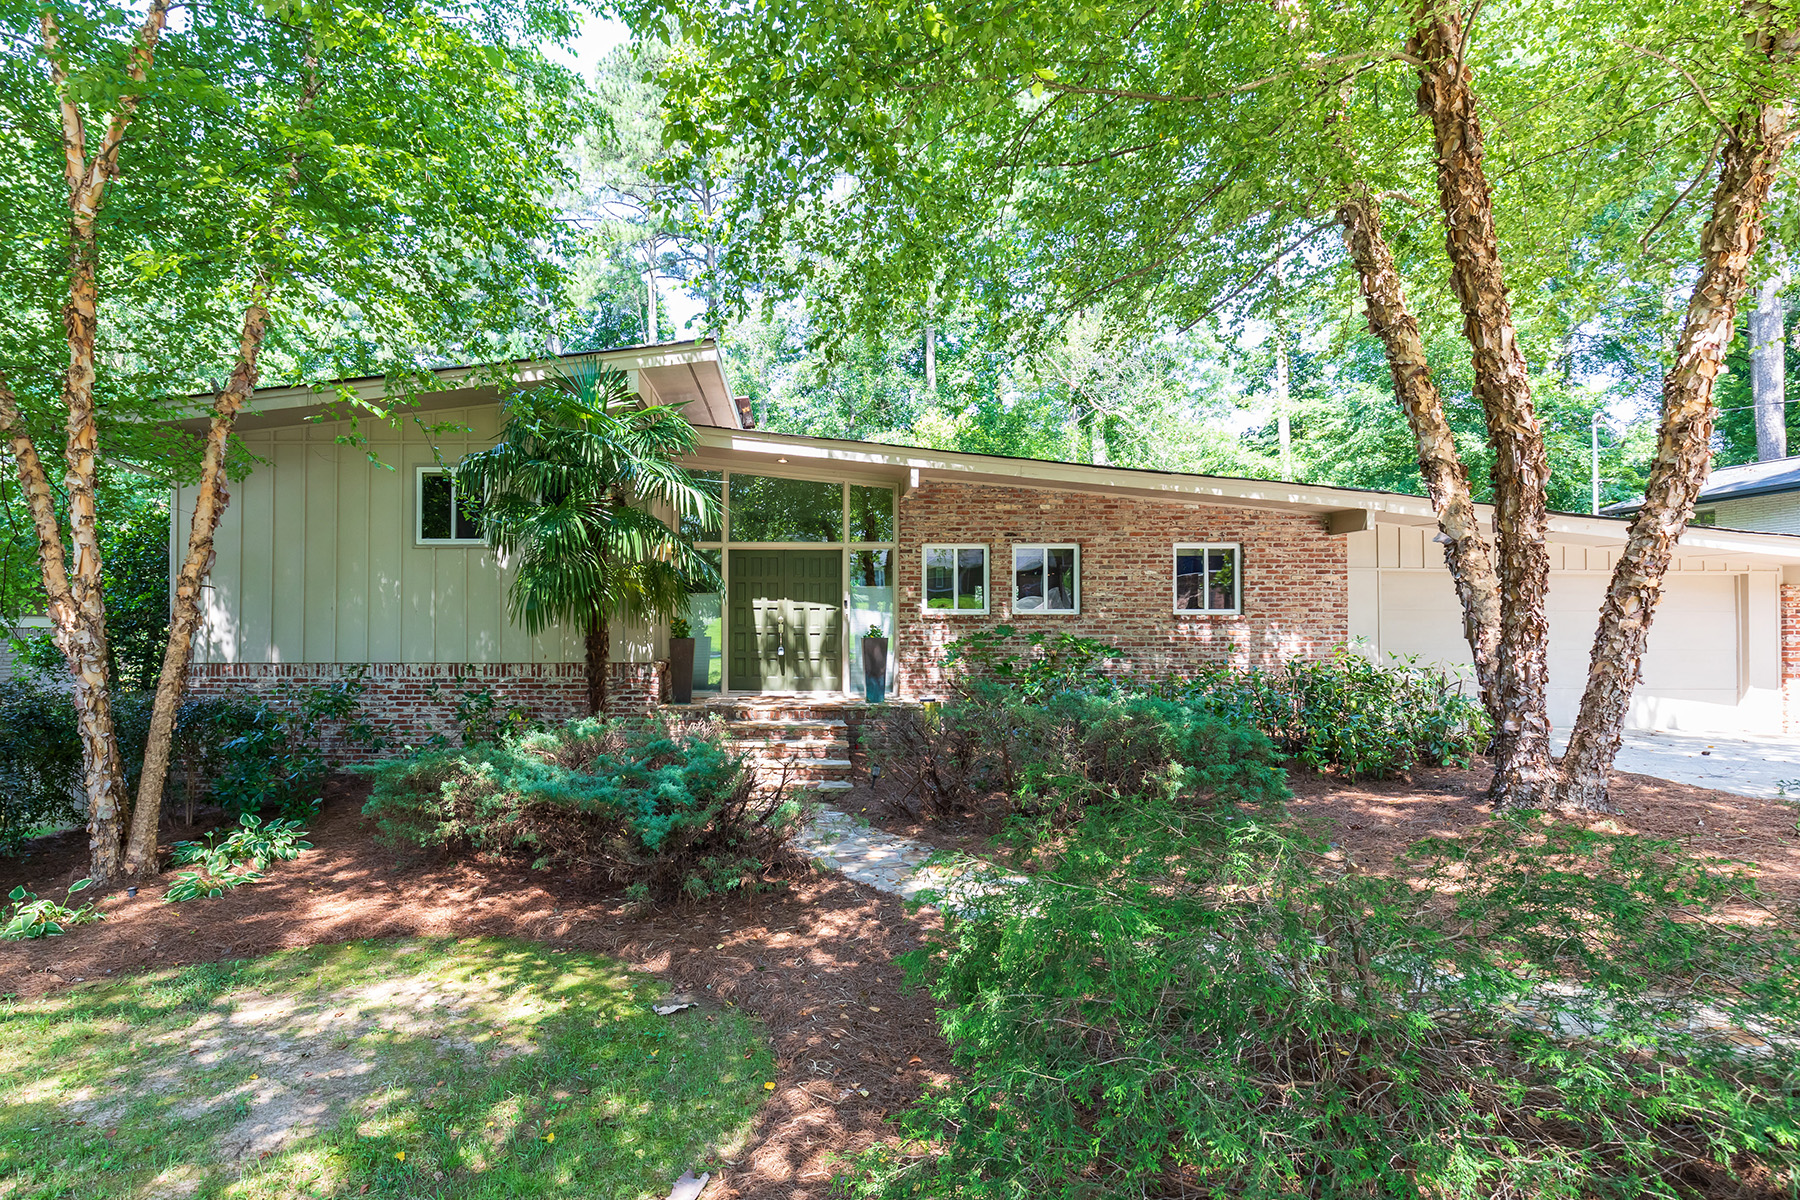 Single Family Home for Sale at Handsome Updated Split-Level Contemporary 2672 Braithwood Rd Atlanta, Georgia 30345 United States